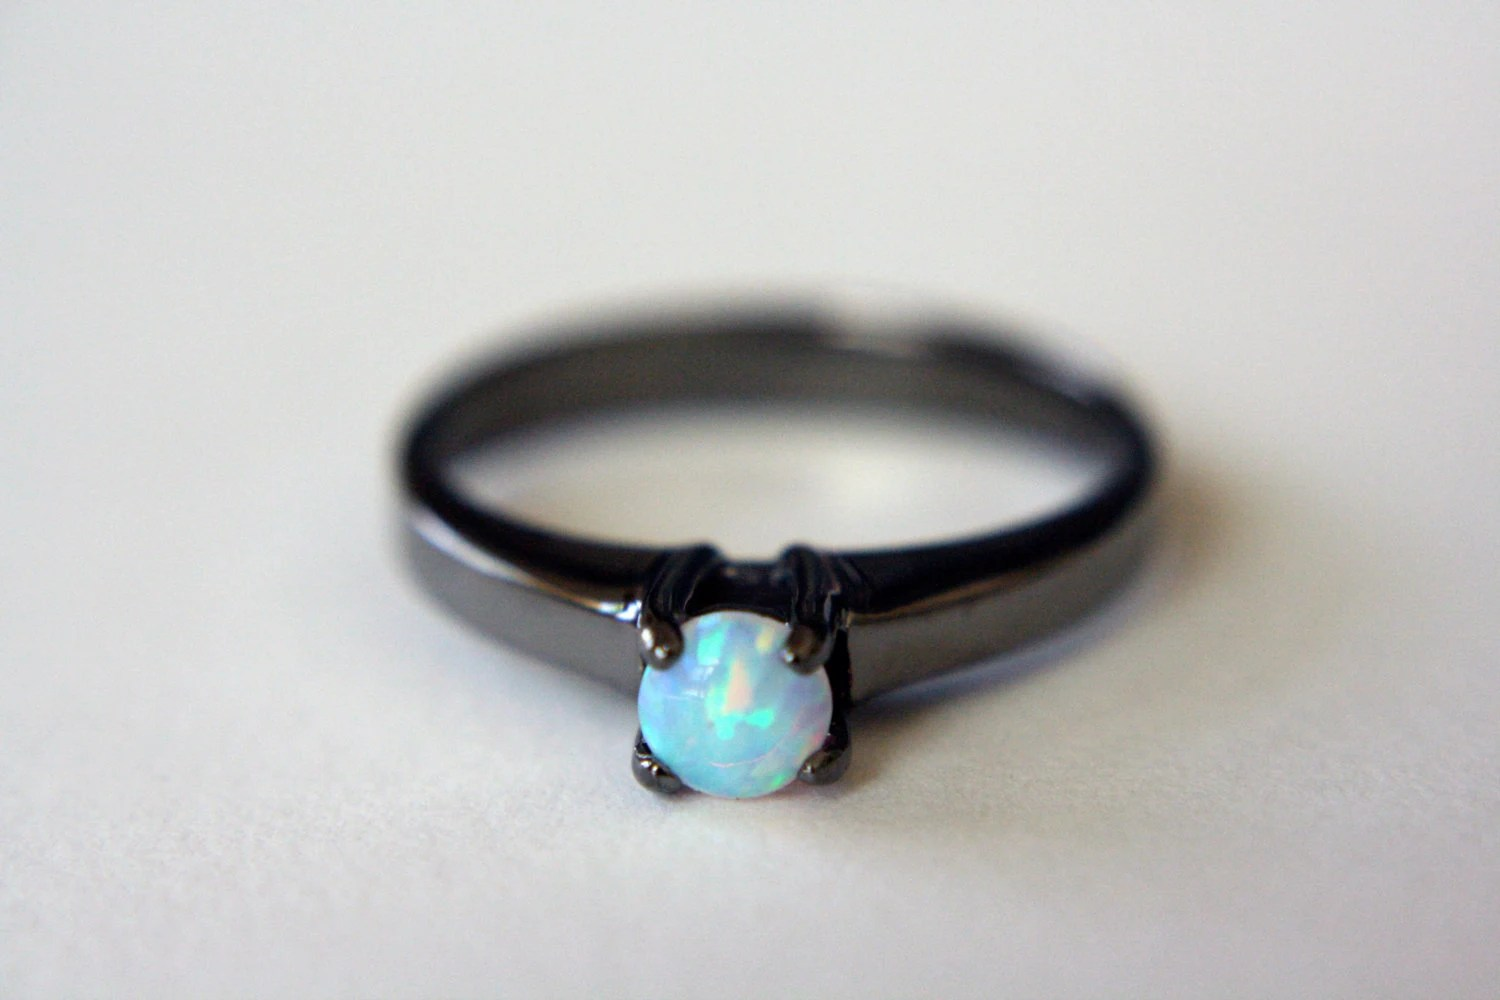 non traditional ring opal wedding ring sets Opal Solitaire Ring in Black Rhodium opal engagement ring opal ring black opal ring sterling silver opal ring opal jewelry